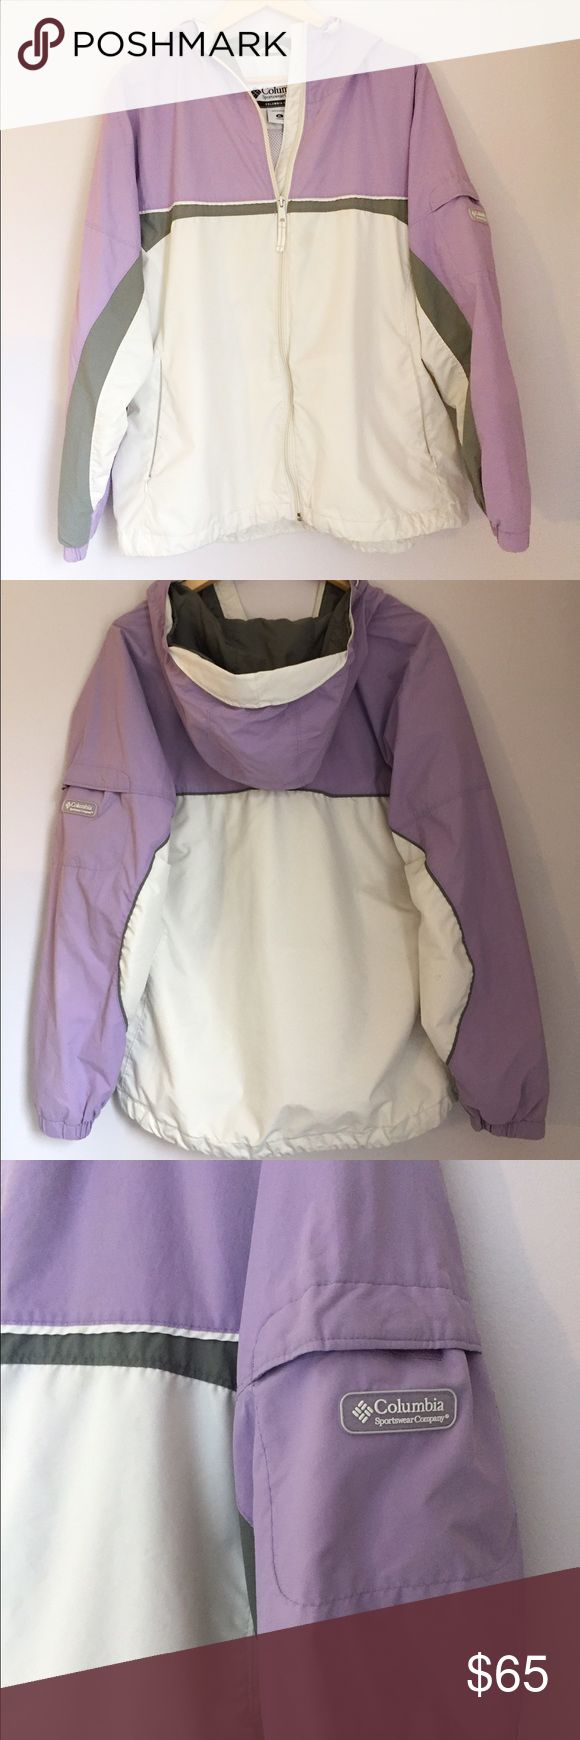 """Columbia Lightweight Hooded Jacket Purple White •Columbia Lightweight Hooded Jacket / al season jacket •In excellent condition •Light purple, white, and gray in color •Two pockets at hip; one pocket on arm with Columbia Sportswear Company logo, one inner mesh pocket •Hooded and lined •Hood and waistband have elastic drawstring; cuffs are elastic •Material content can be found in photo of tag •Al measurements are approximate: length 28""""/ armpit to armpit 23""""/ armpit to end of sleeve 22"""" •I'm…"""